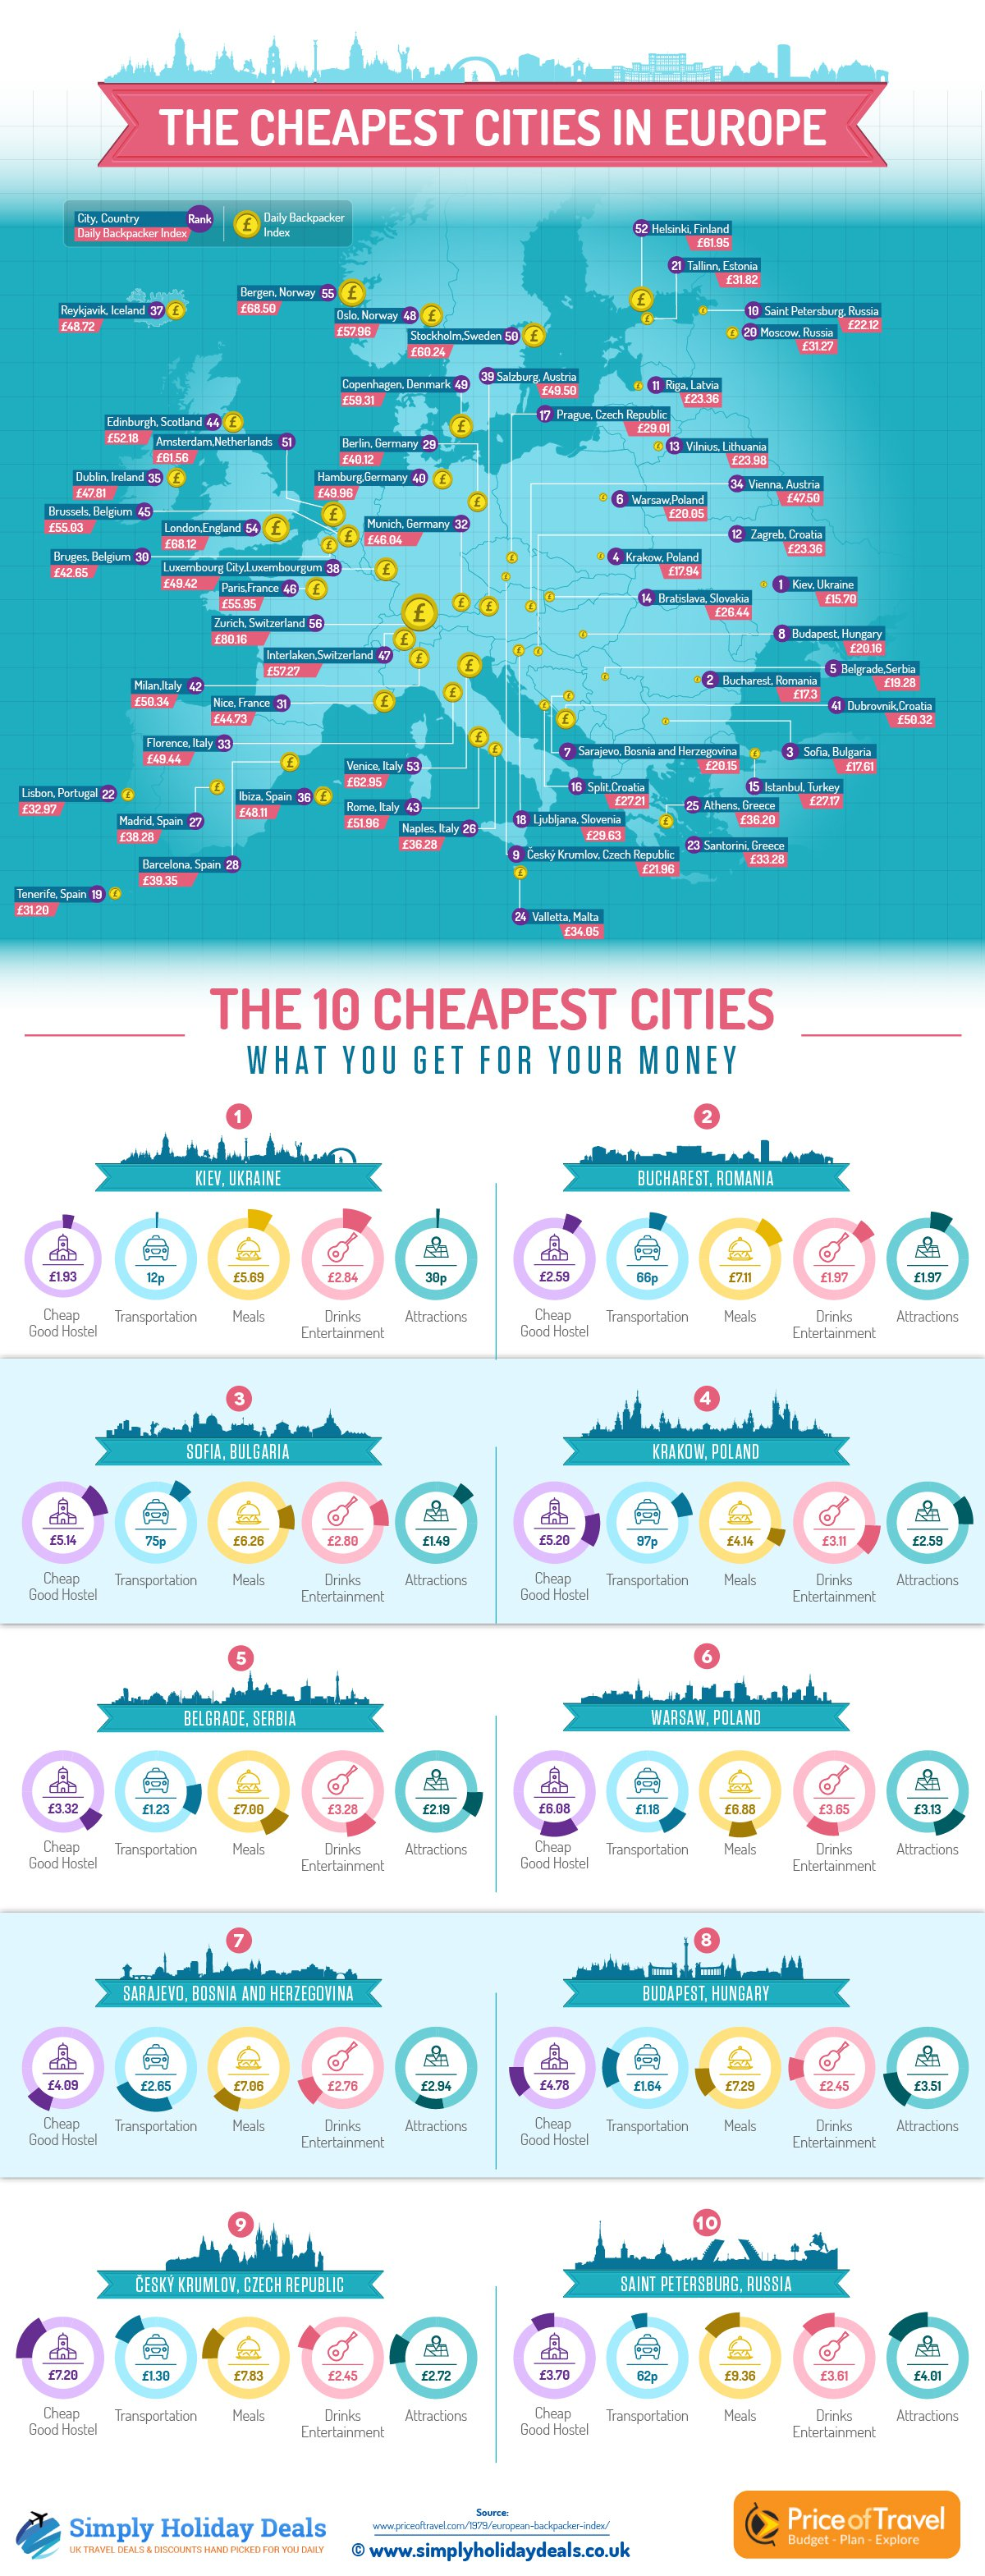 Where Is Sarajevo On The List Of The Cheapest Cities In Europe - Where is sarajevo